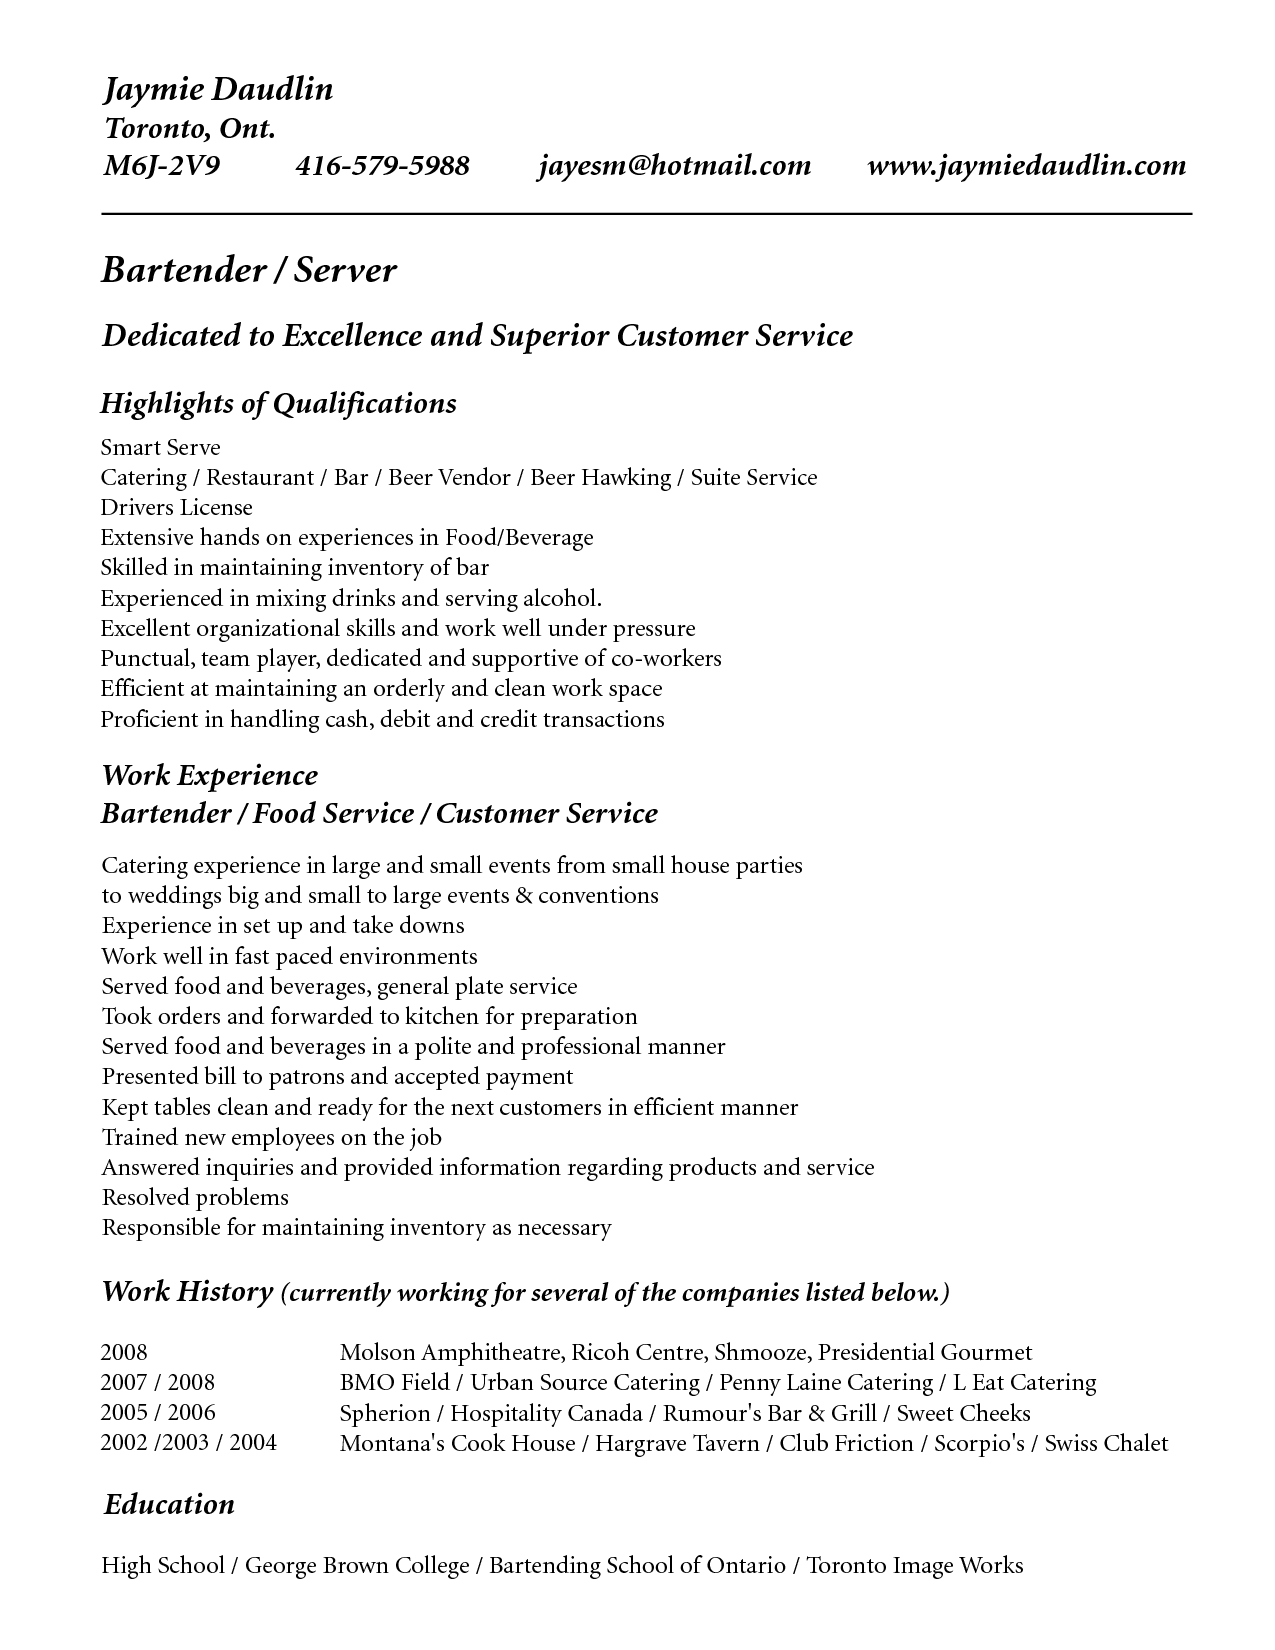 We Already Knew That We Must Put Our Educational Information To Any Resume,  Including The Bartenders Resume. When You Make Your Bartender Resume, It I.  ...  Sample Resume It